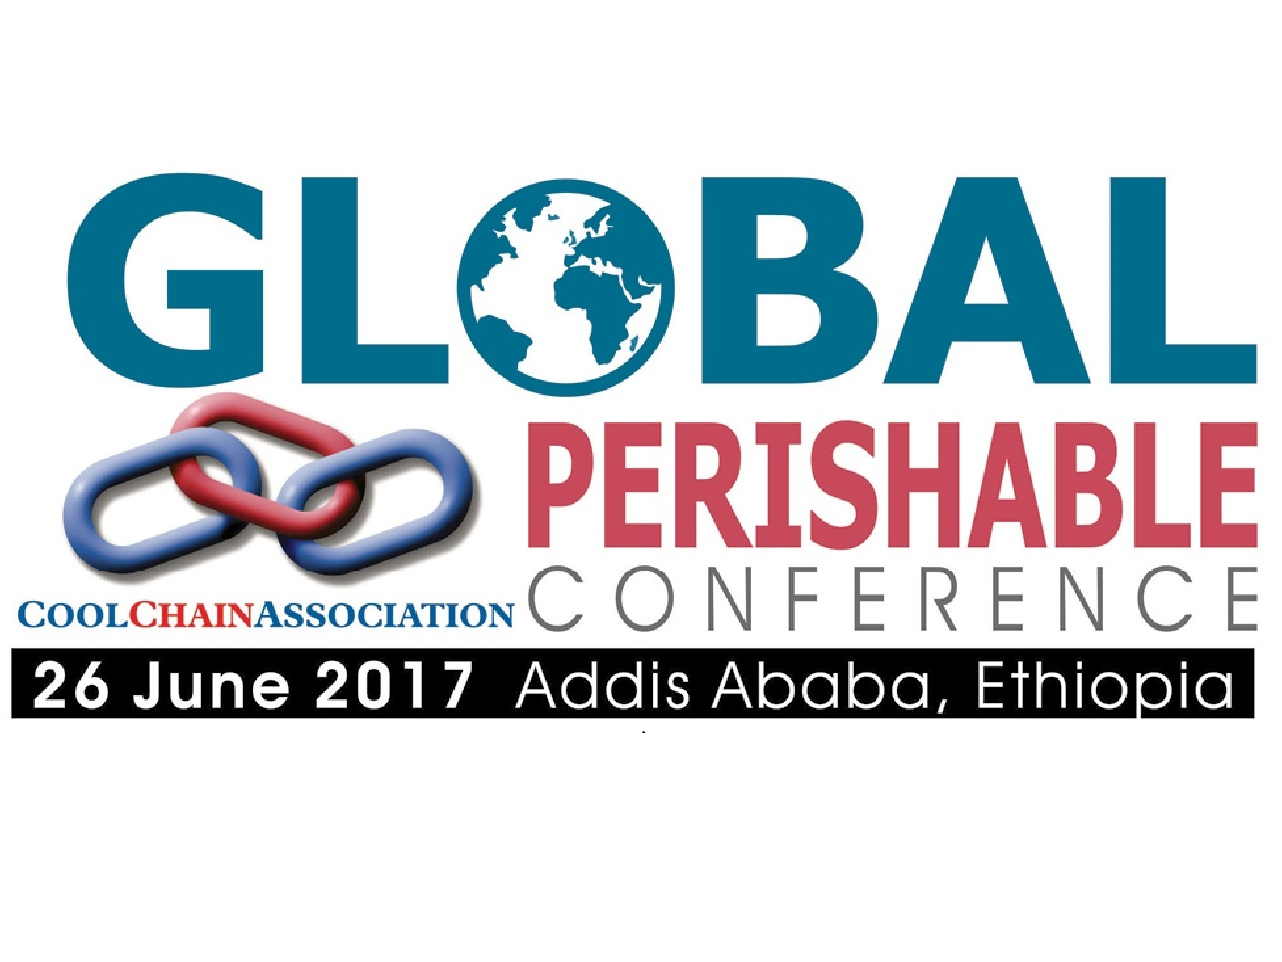 The Global Cool Chain Association Perishables Conference 2017